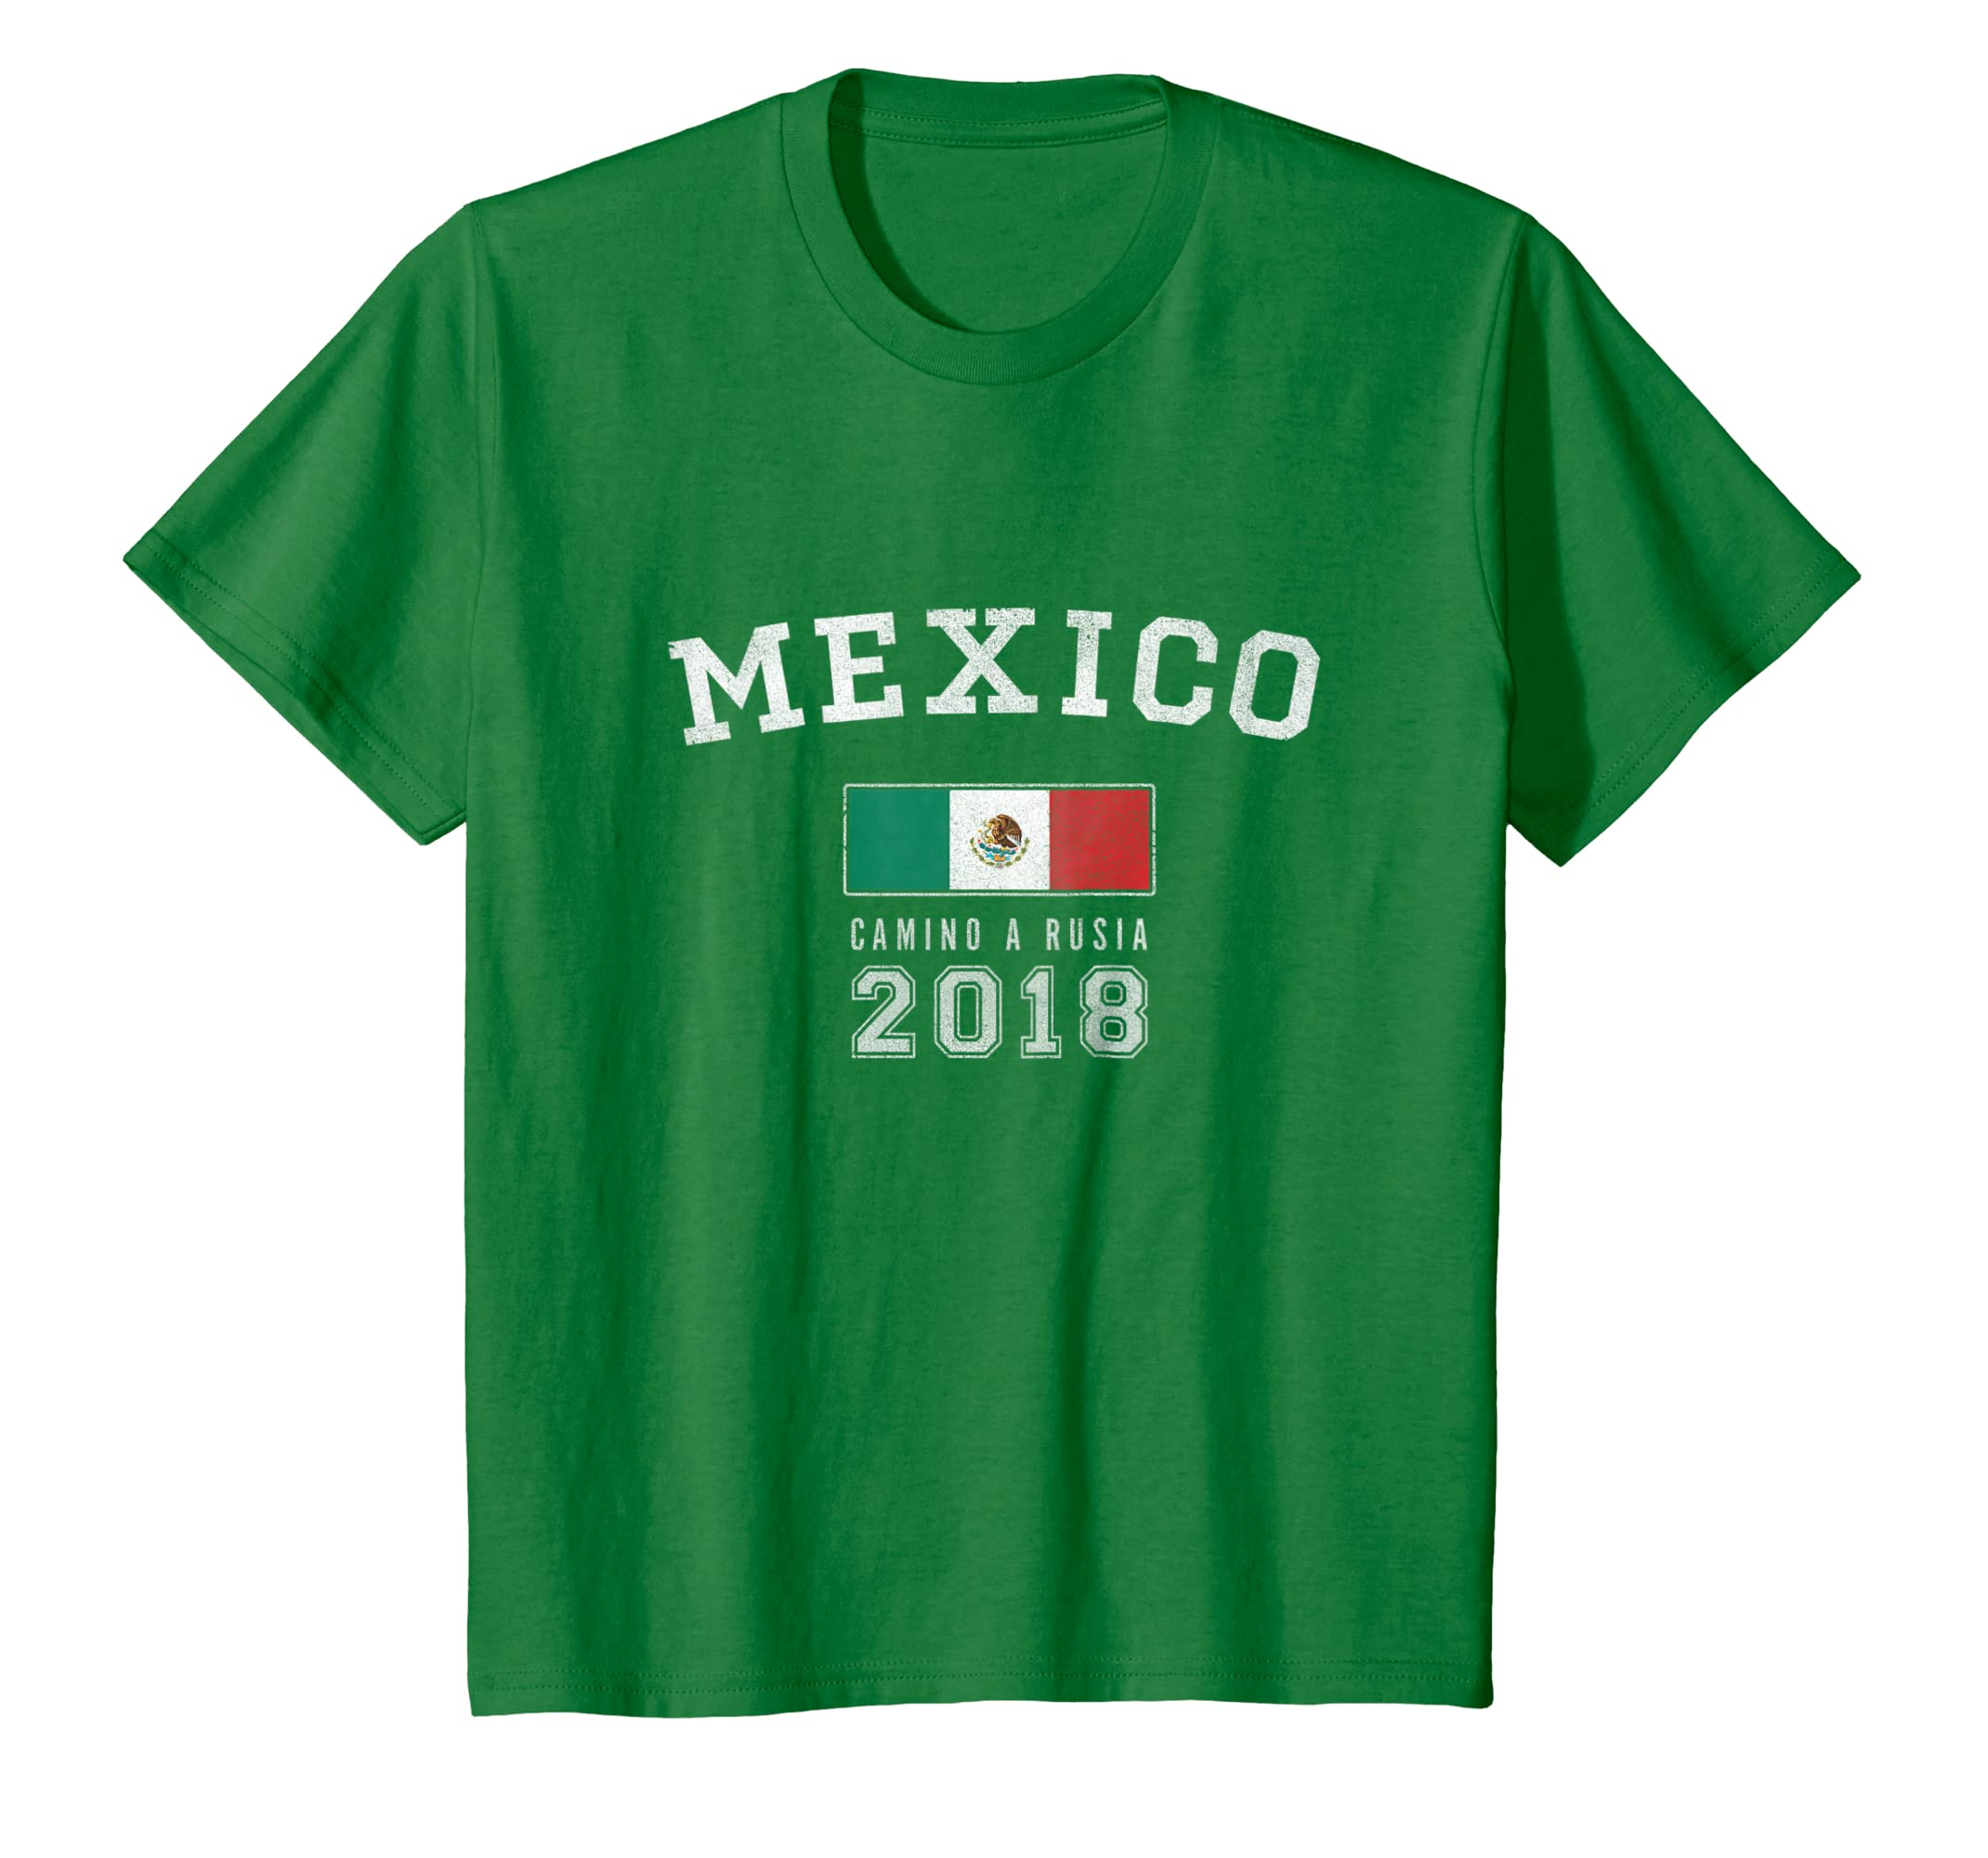 Amazon.com: Mexico, Soccer, Rusia 2018 tshirt - Camiseta Futbol Tee: Clothing